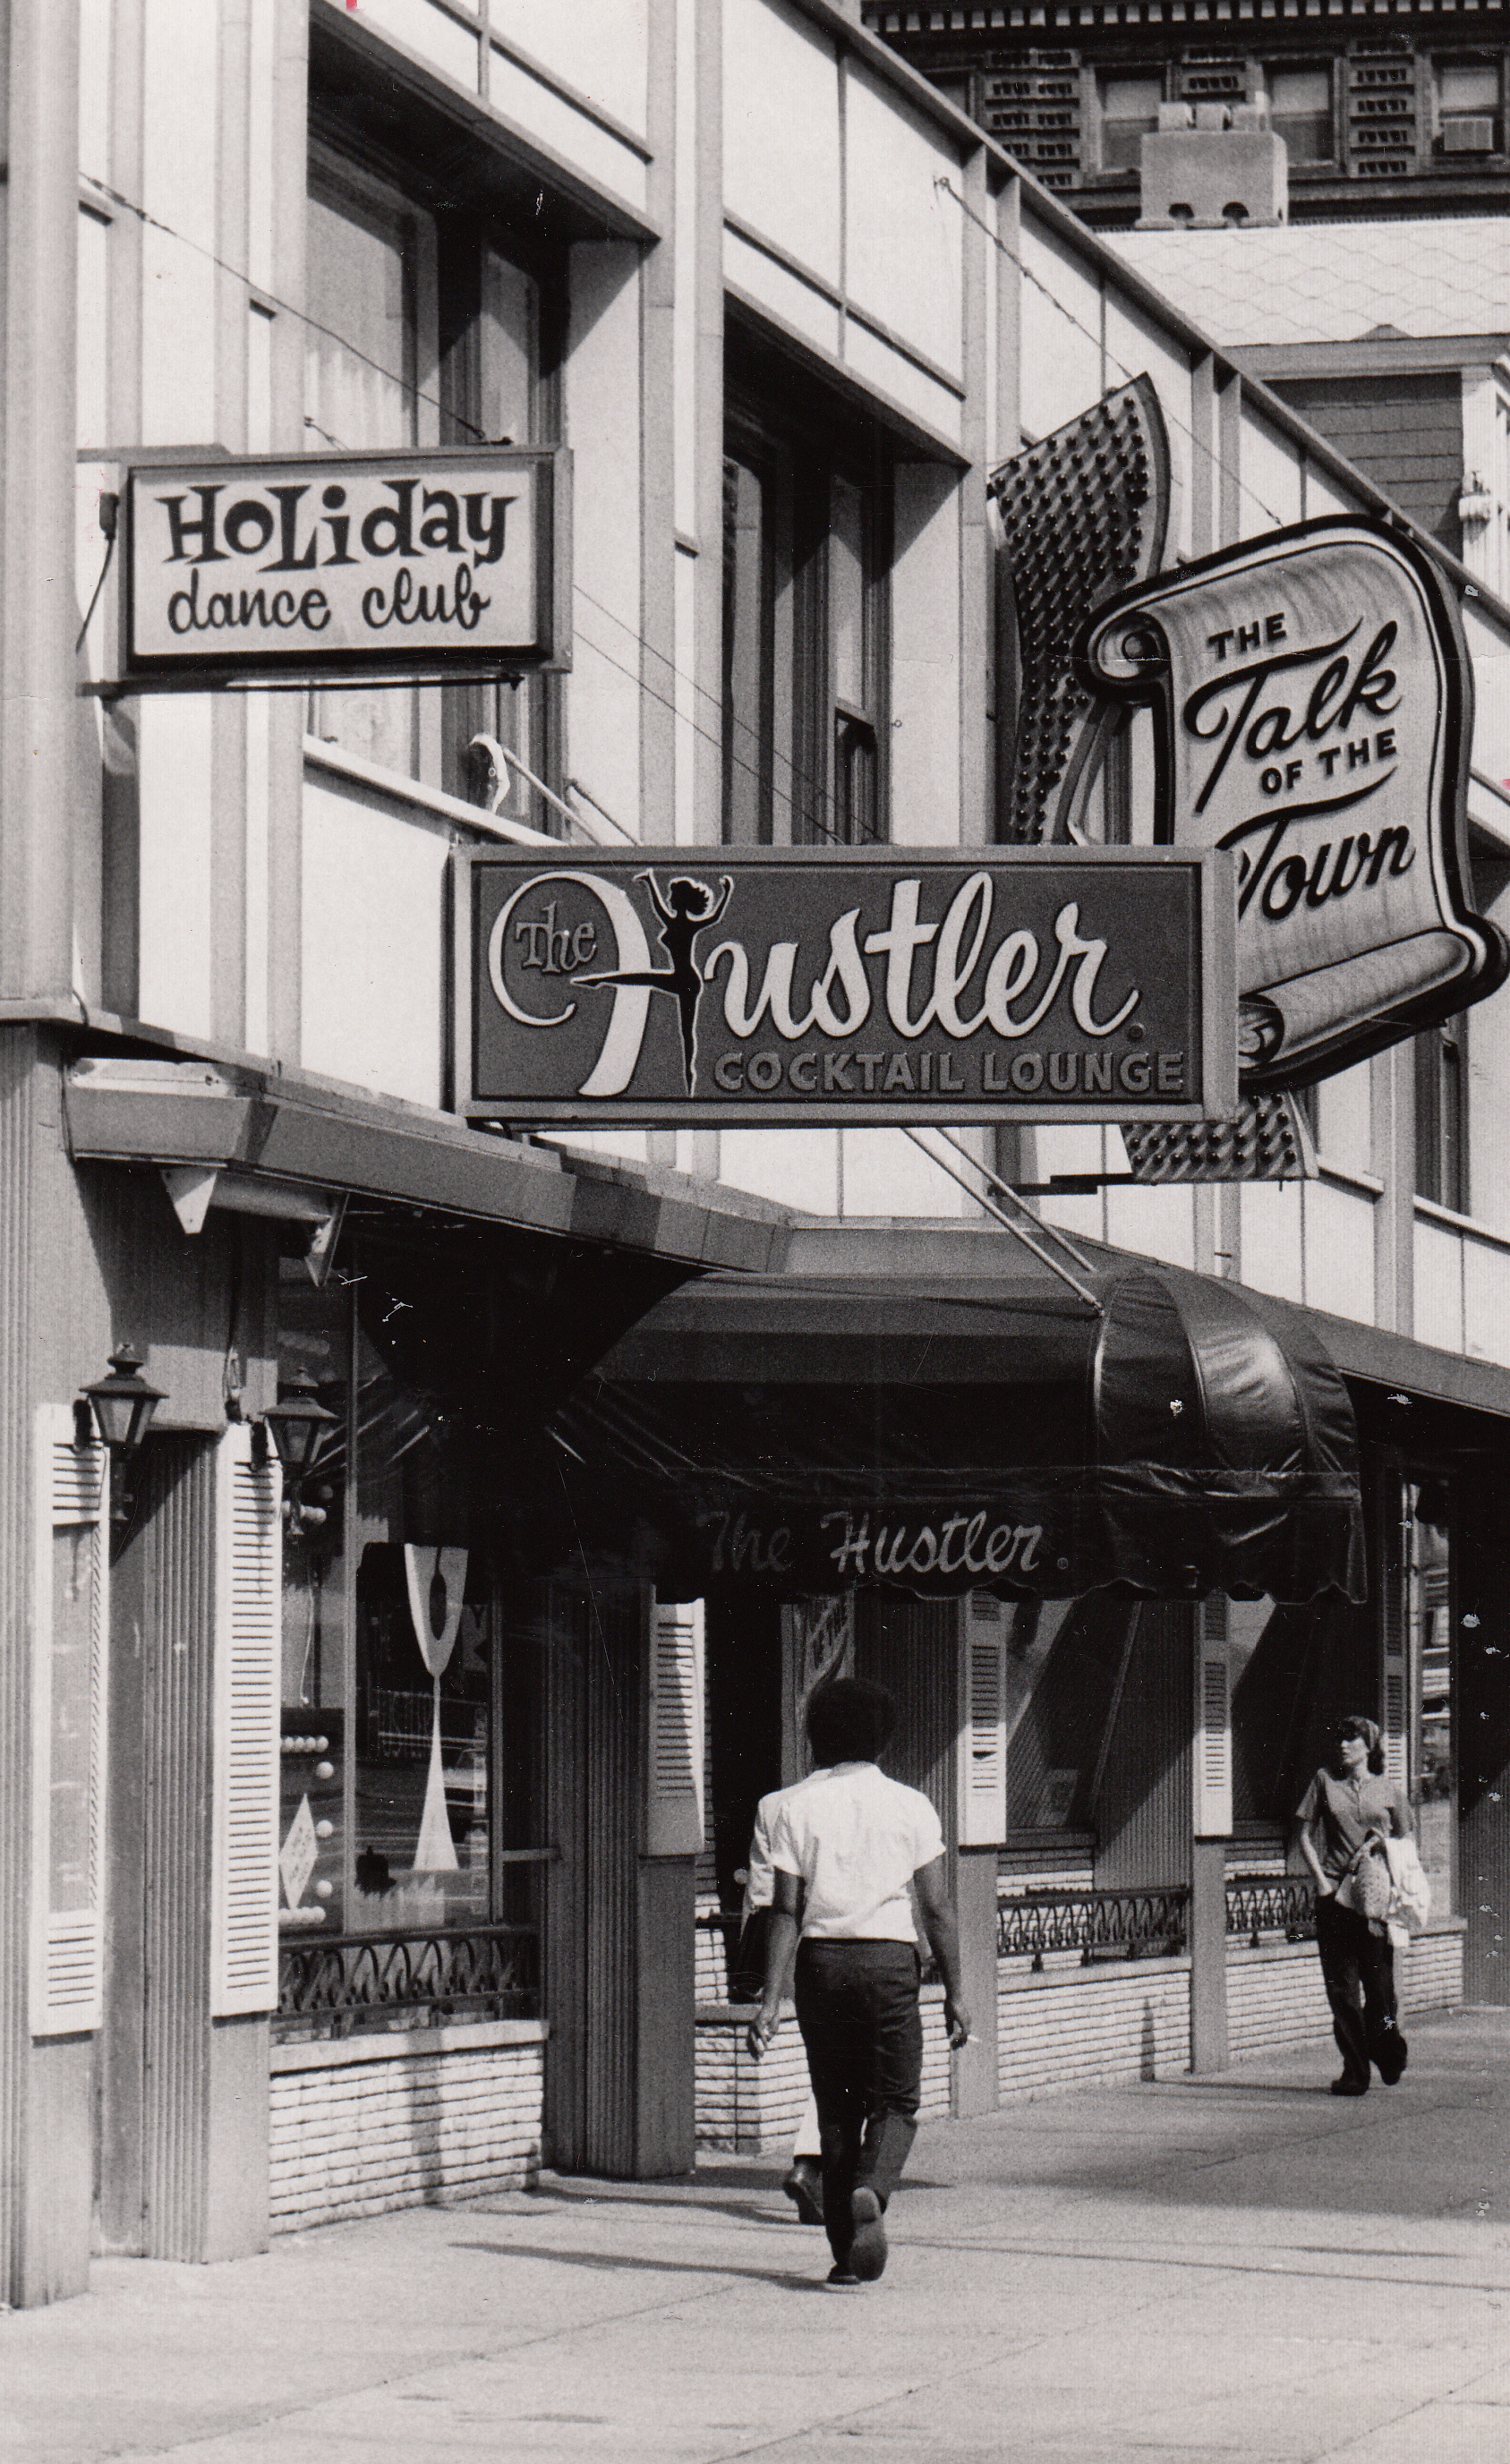 America's first Hustler Club. The Hustler Cocktail Lounge, Dayton, OH, August, 1973.